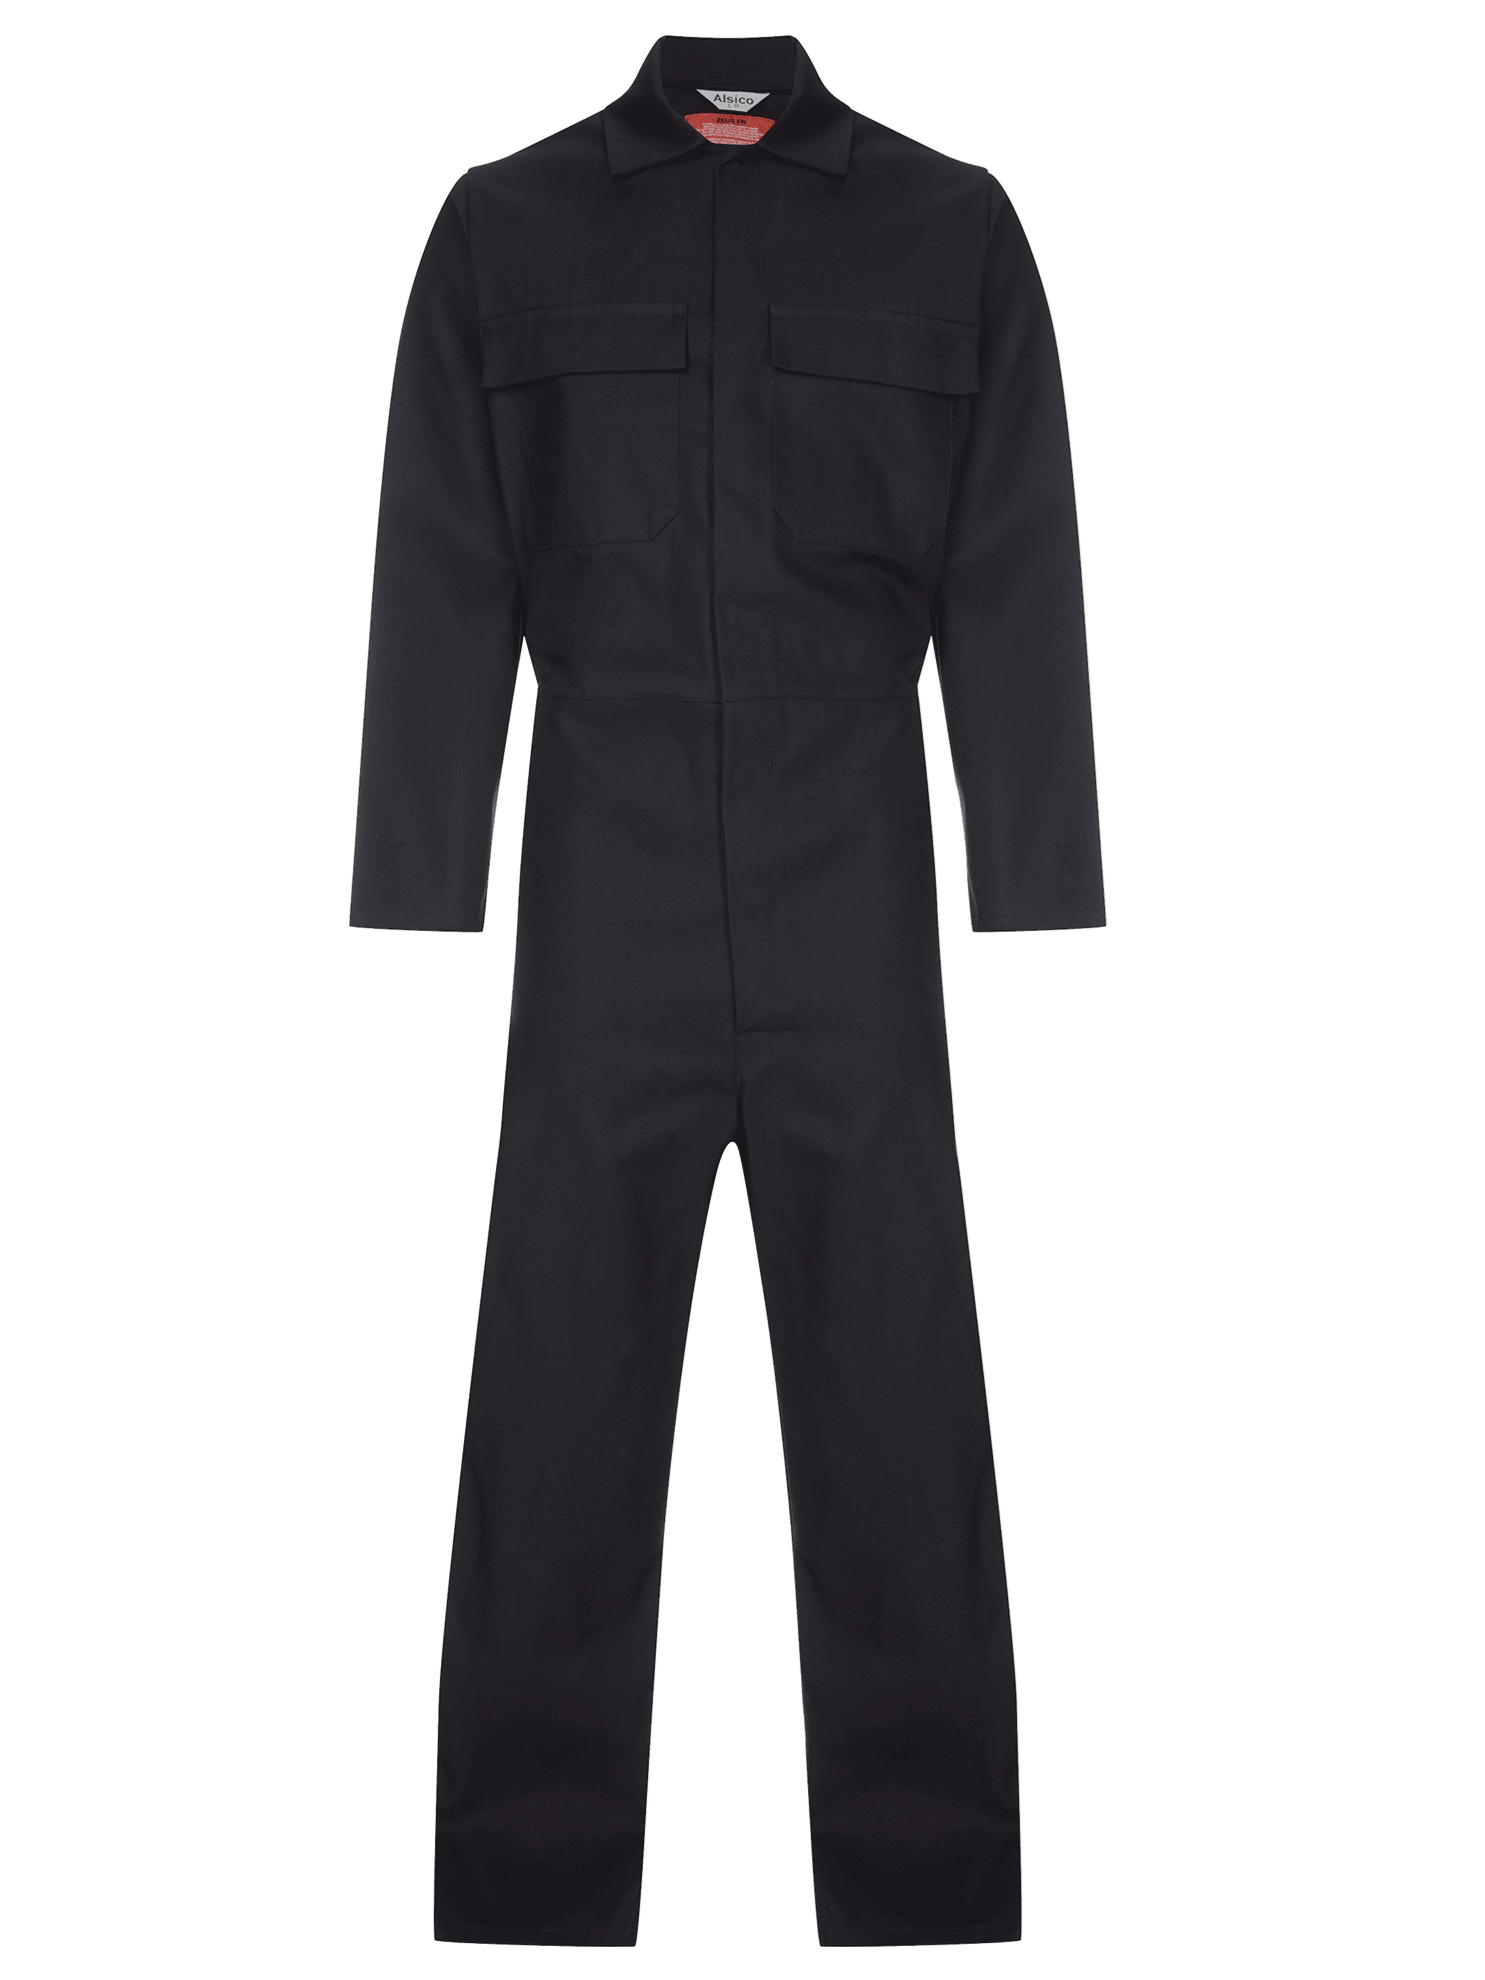 Picture of Coverall made with Zeus FR - Black